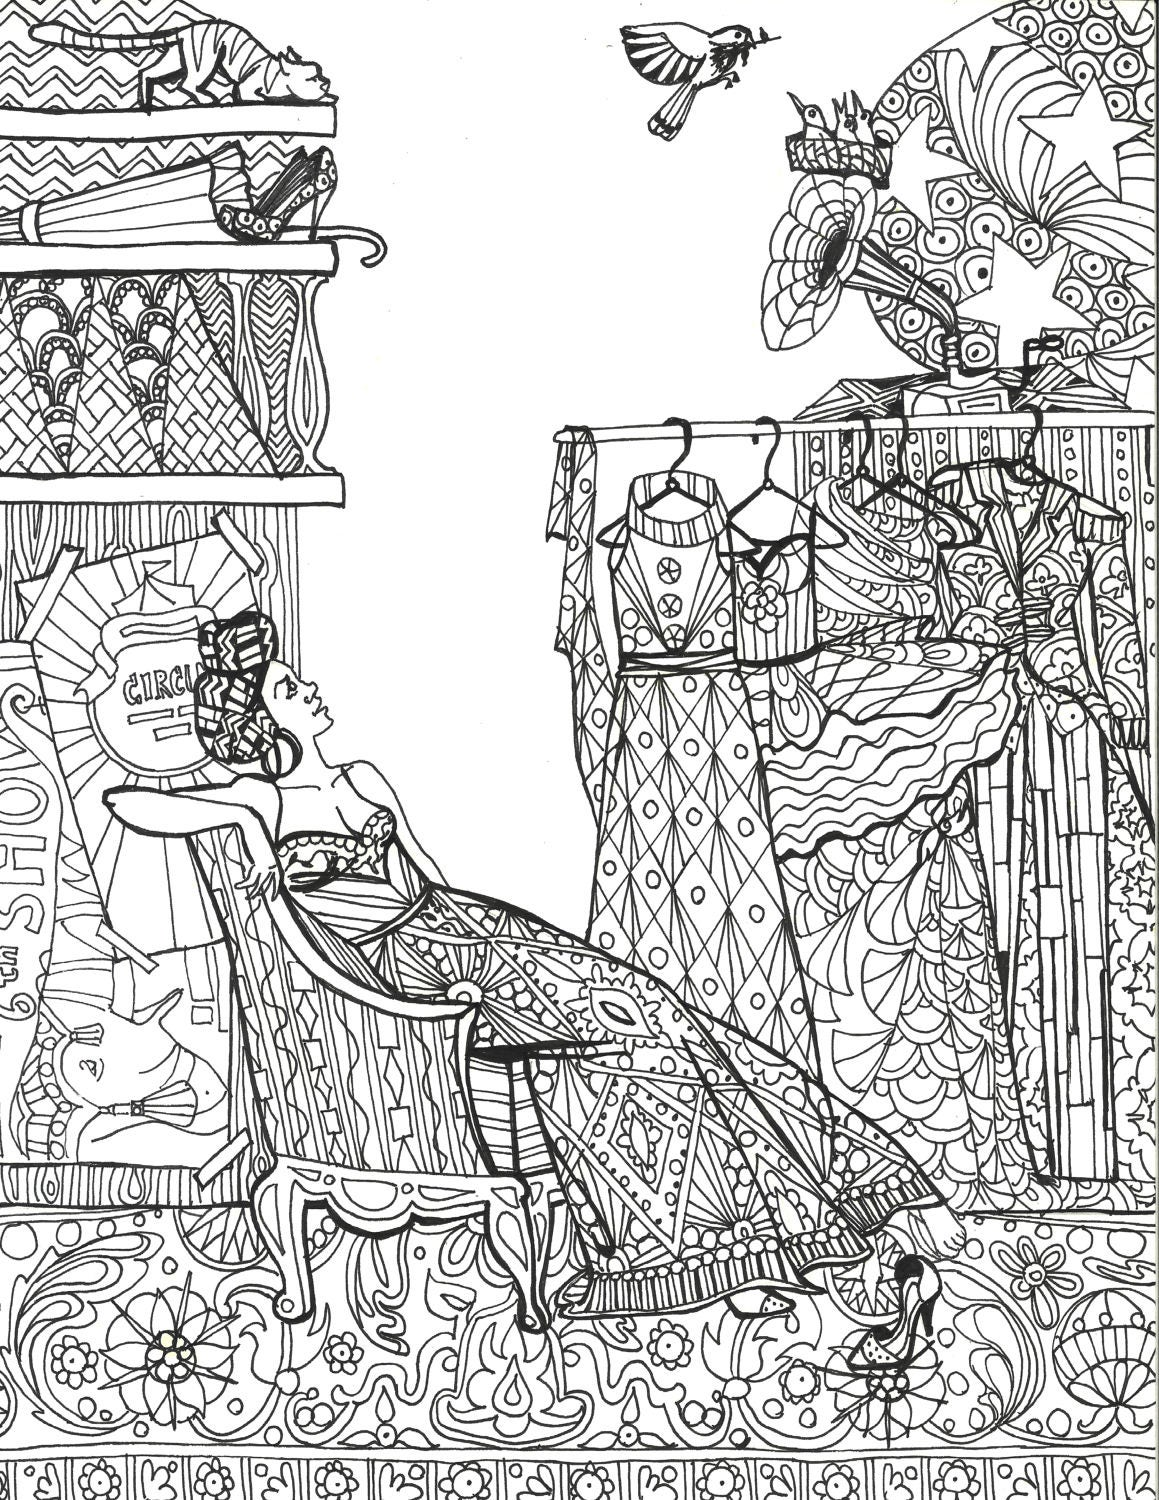 Diva coloring page for Diva coloring pages